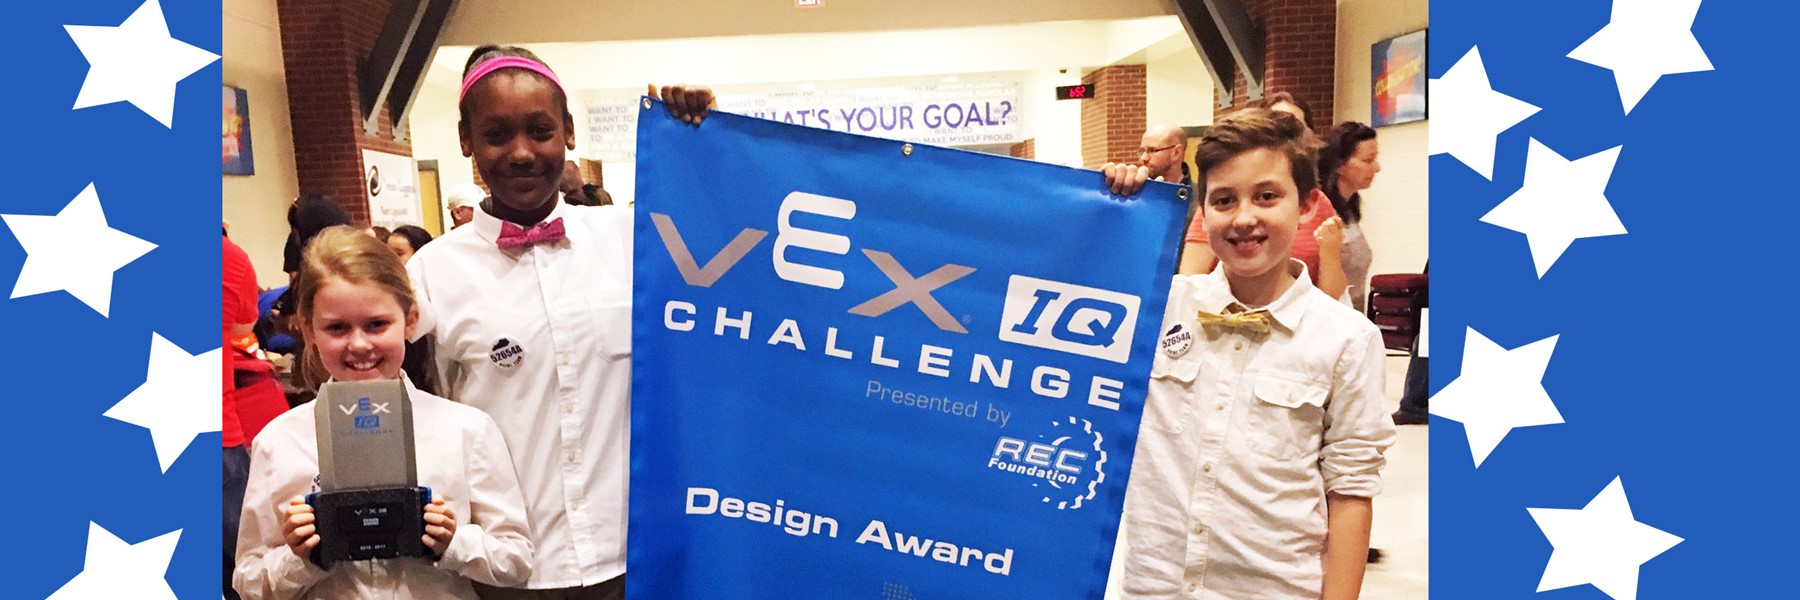 2017 VexIQ Challenge Design Award Winners